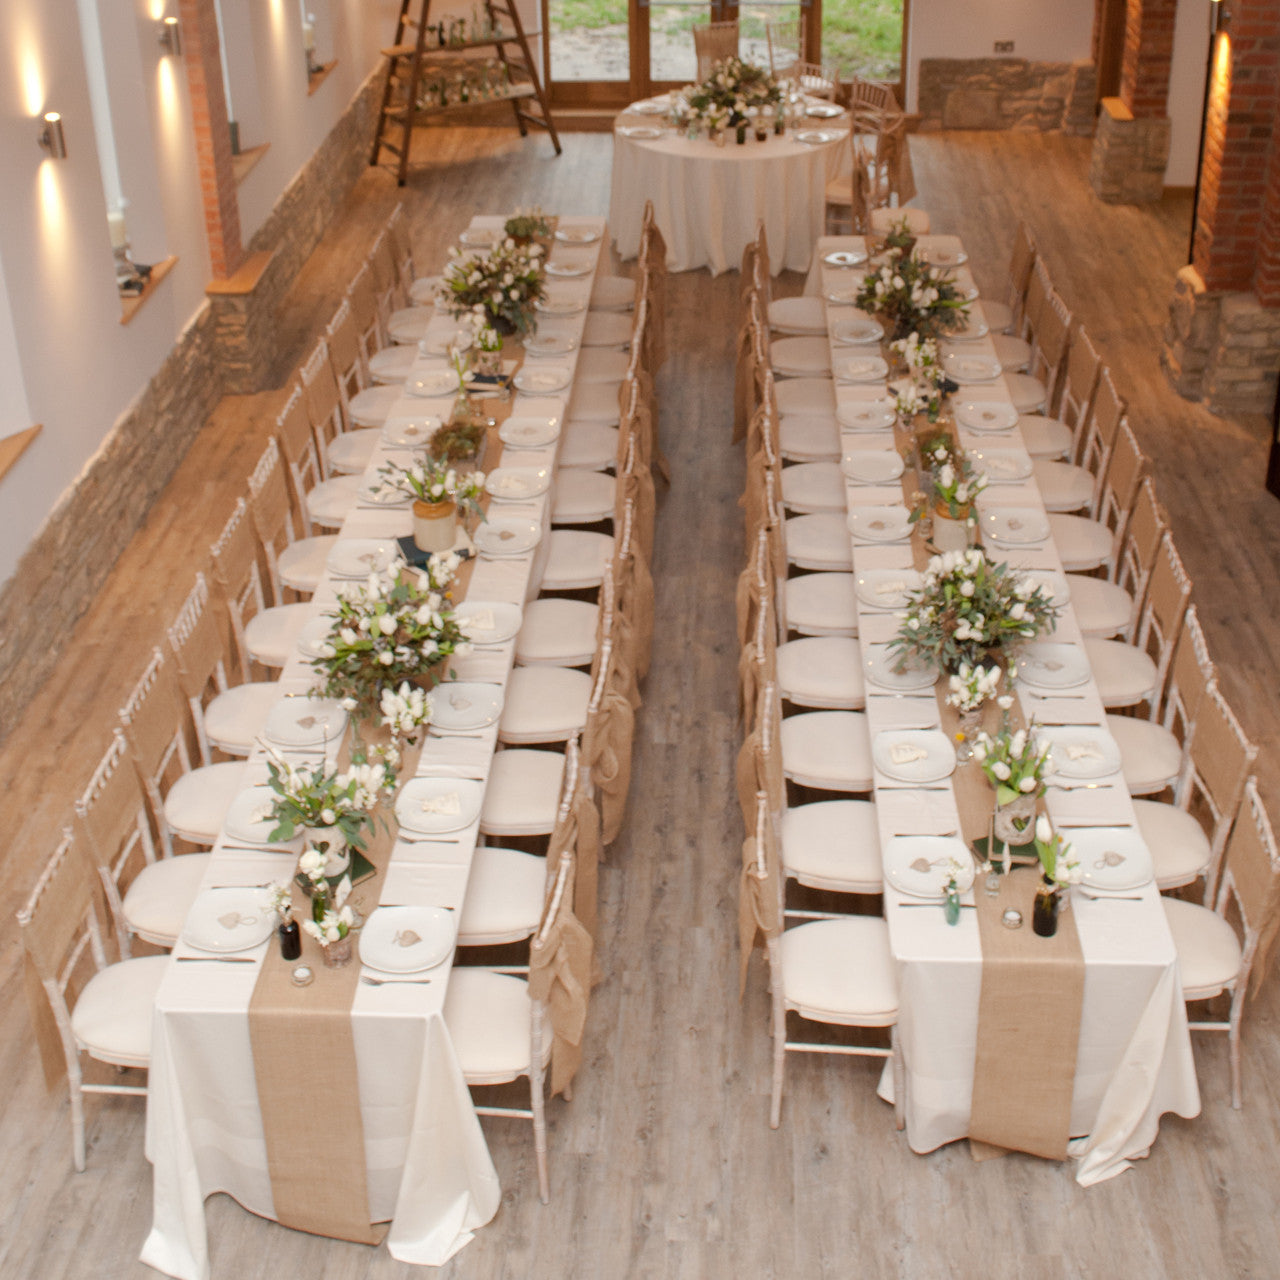 Hessian burlap table runner 5m length the wedding of my dreams junglespirit Choice Image